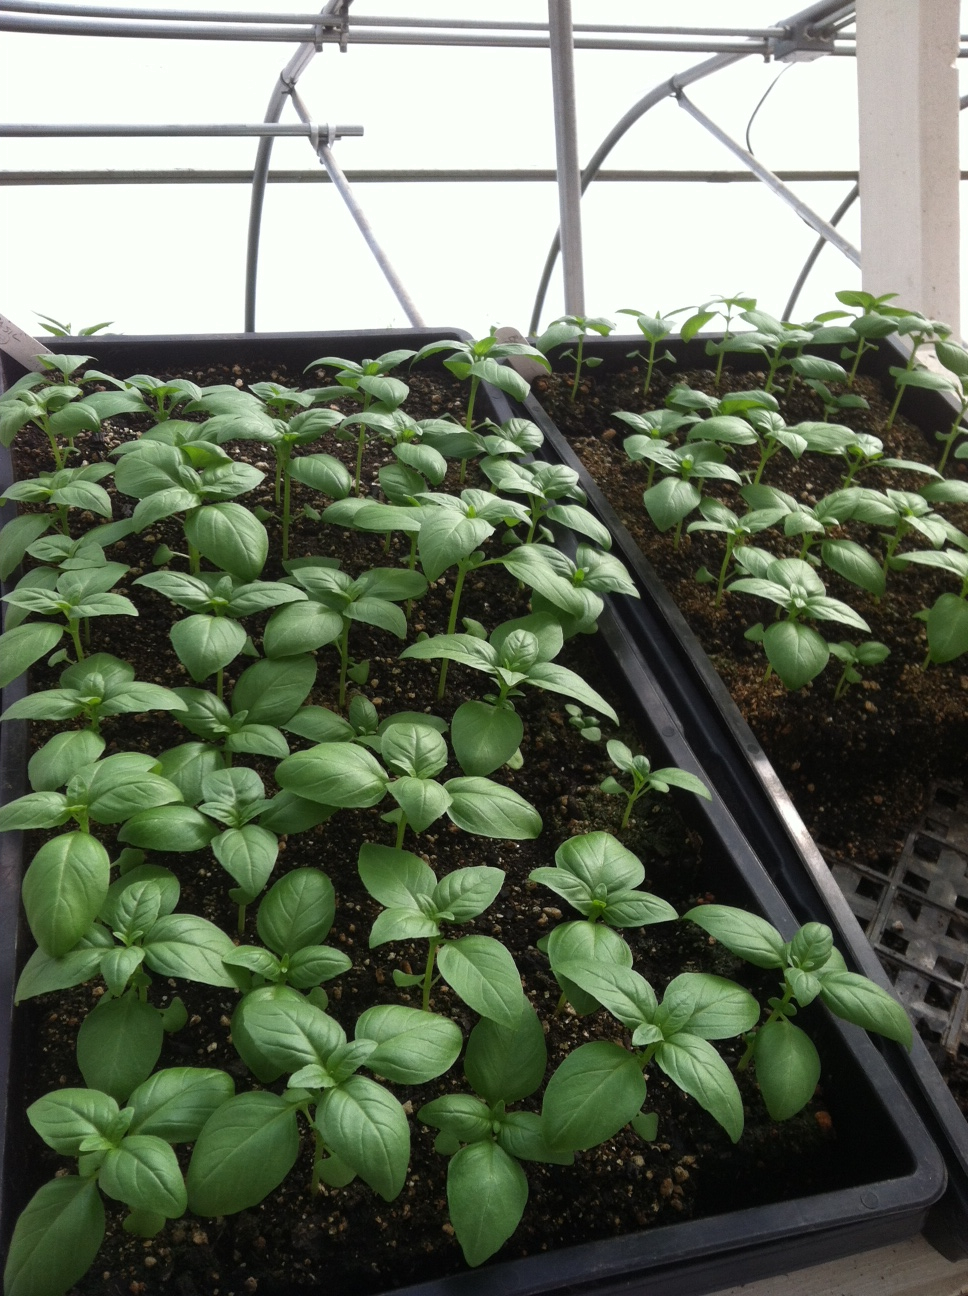 Basil seedlings.